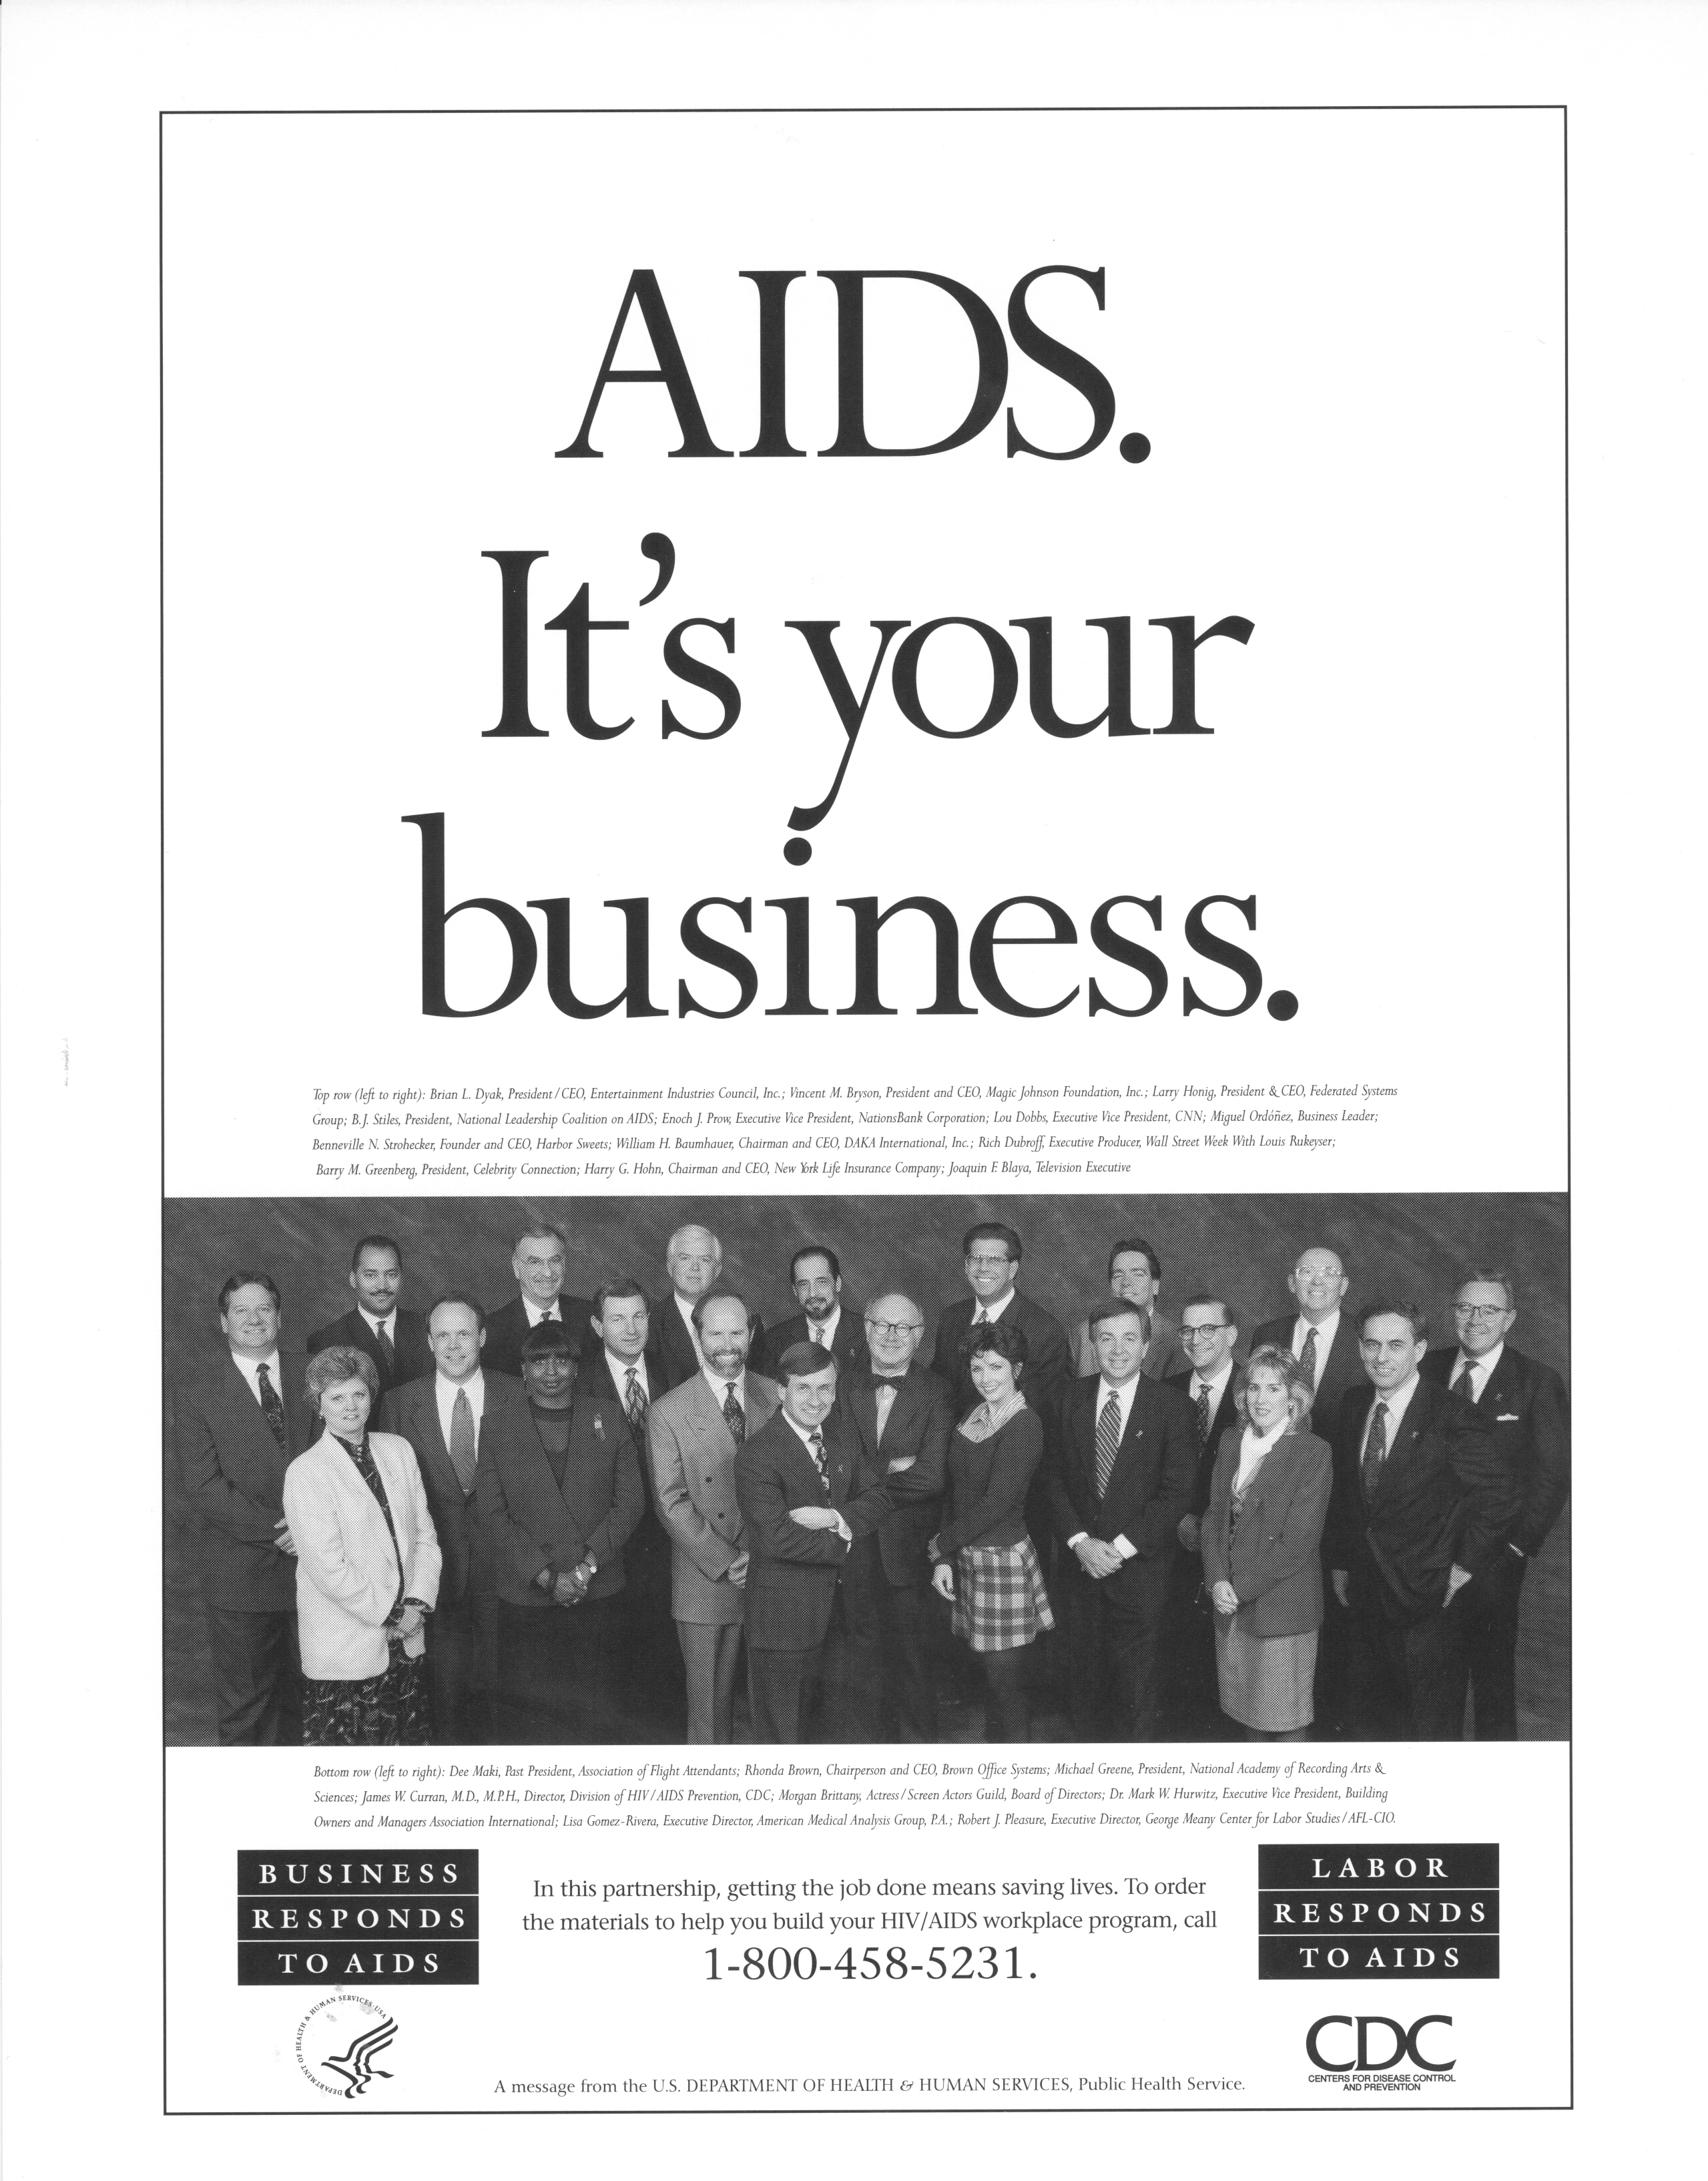 AIDS. It's your business.